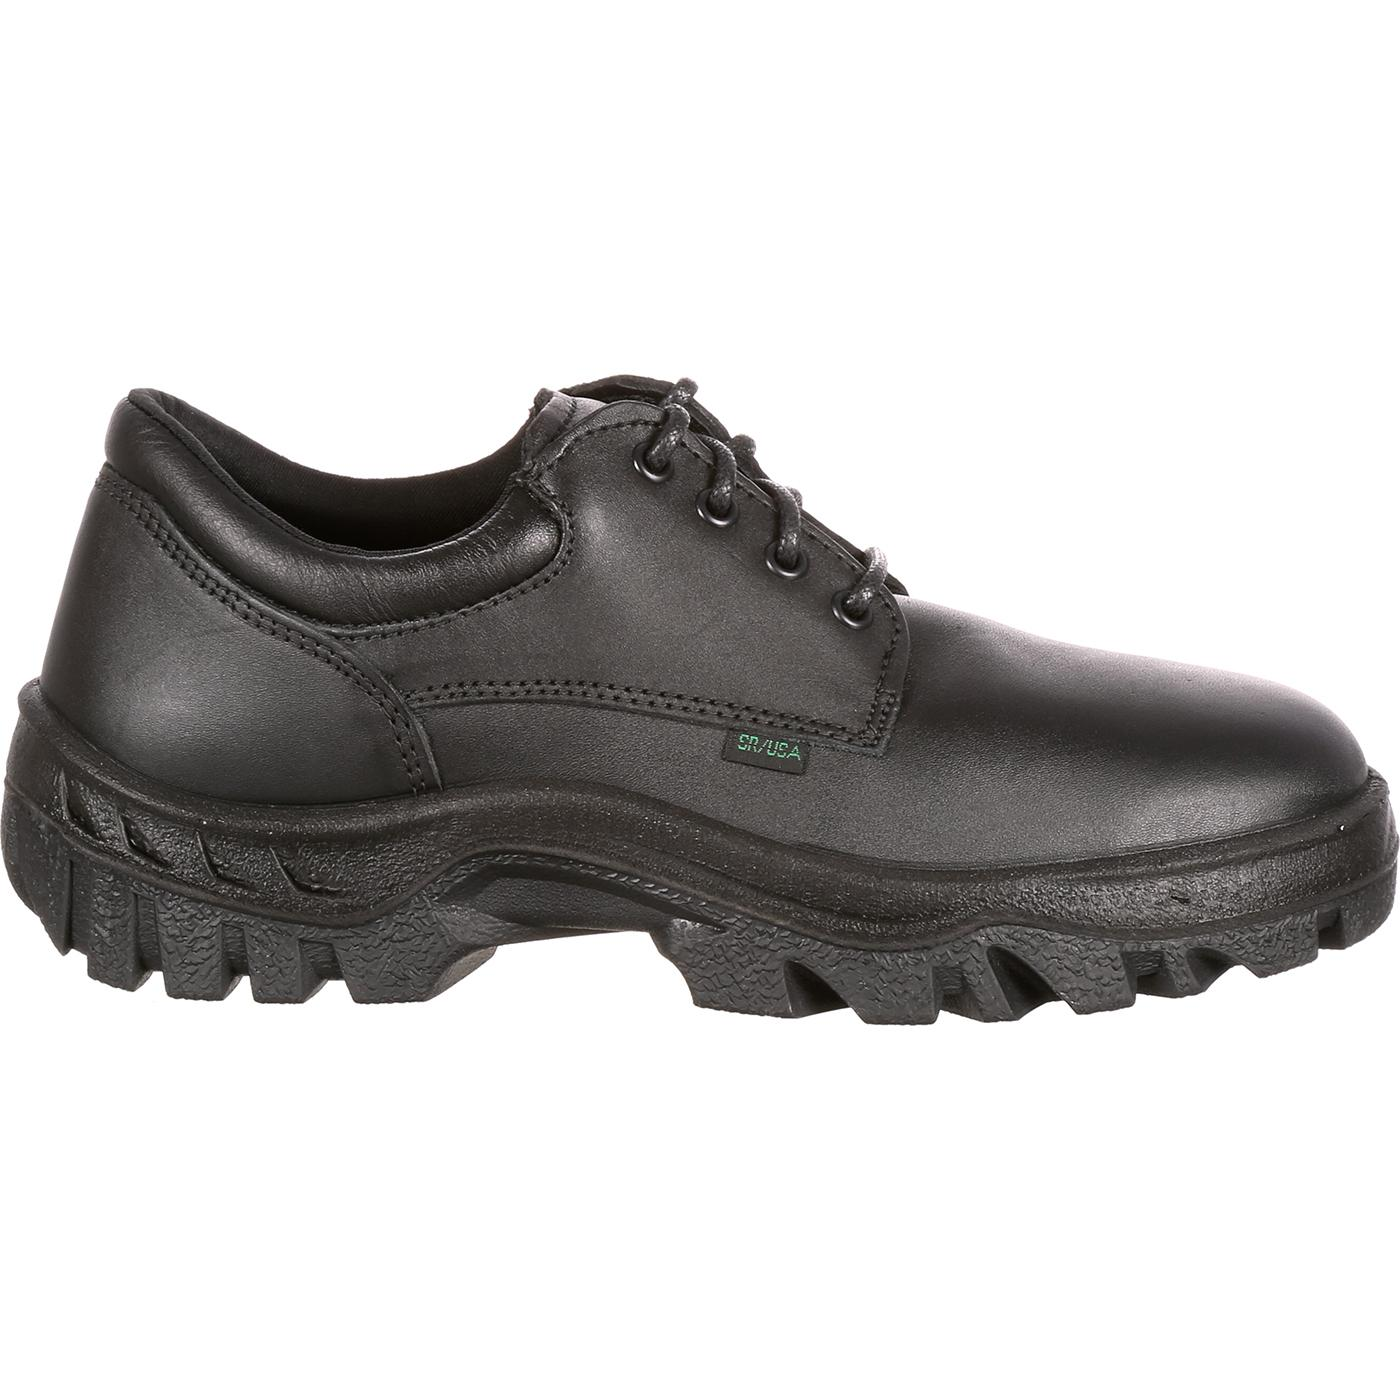 Safety Shoe Wide At The Toe